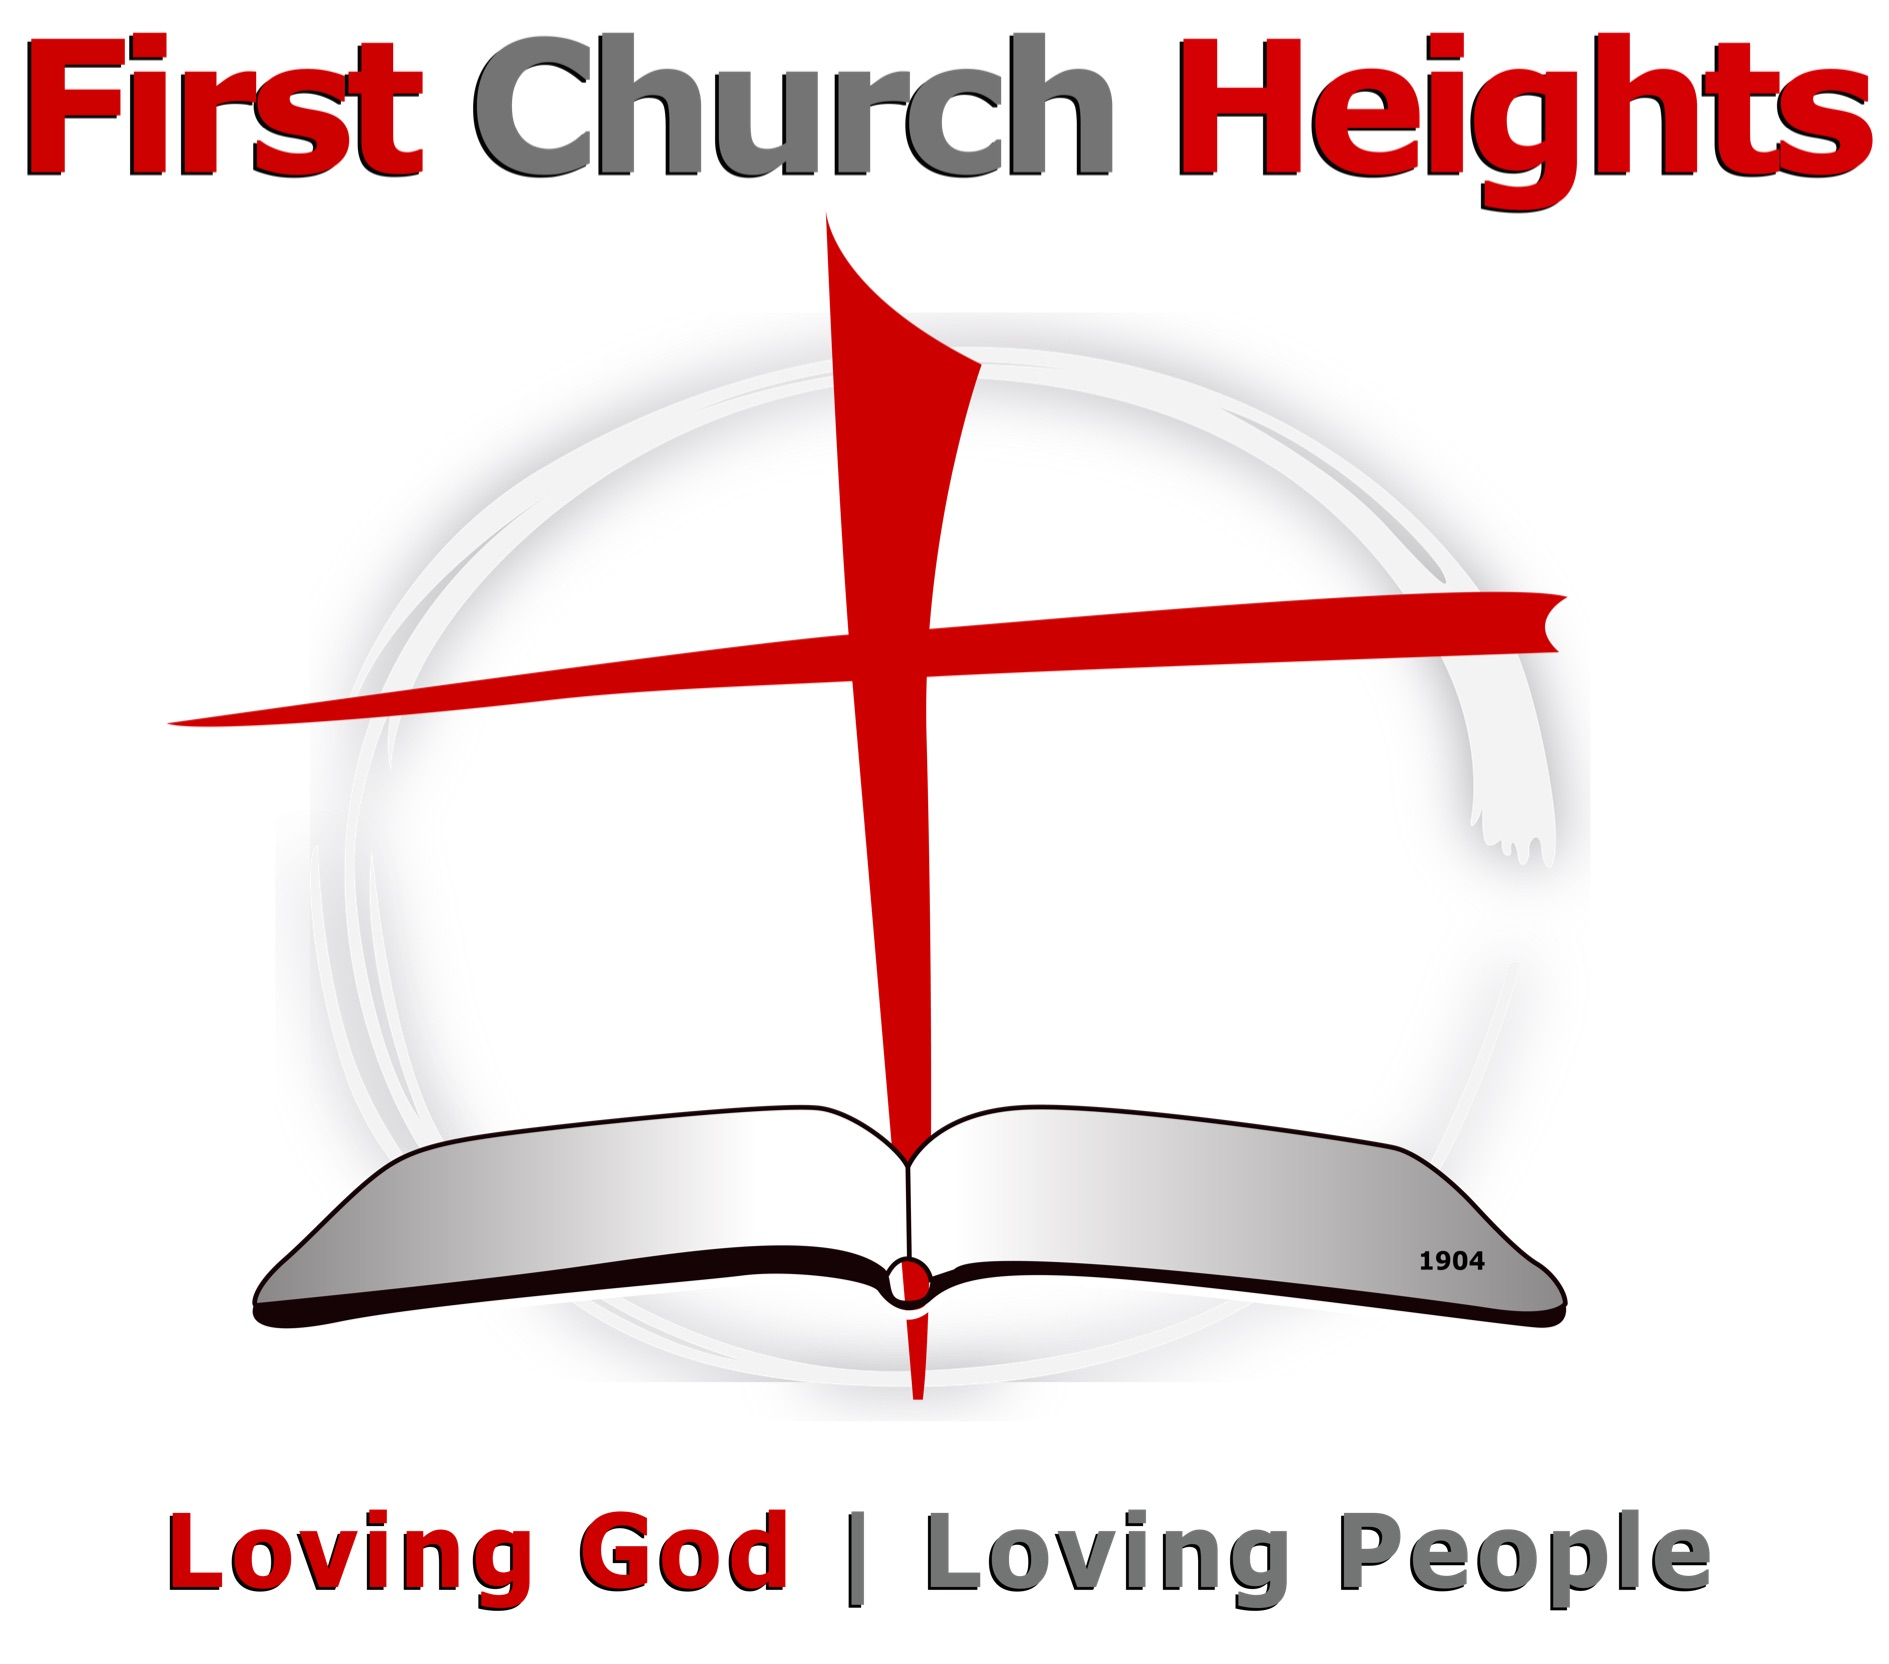 First Church Heights